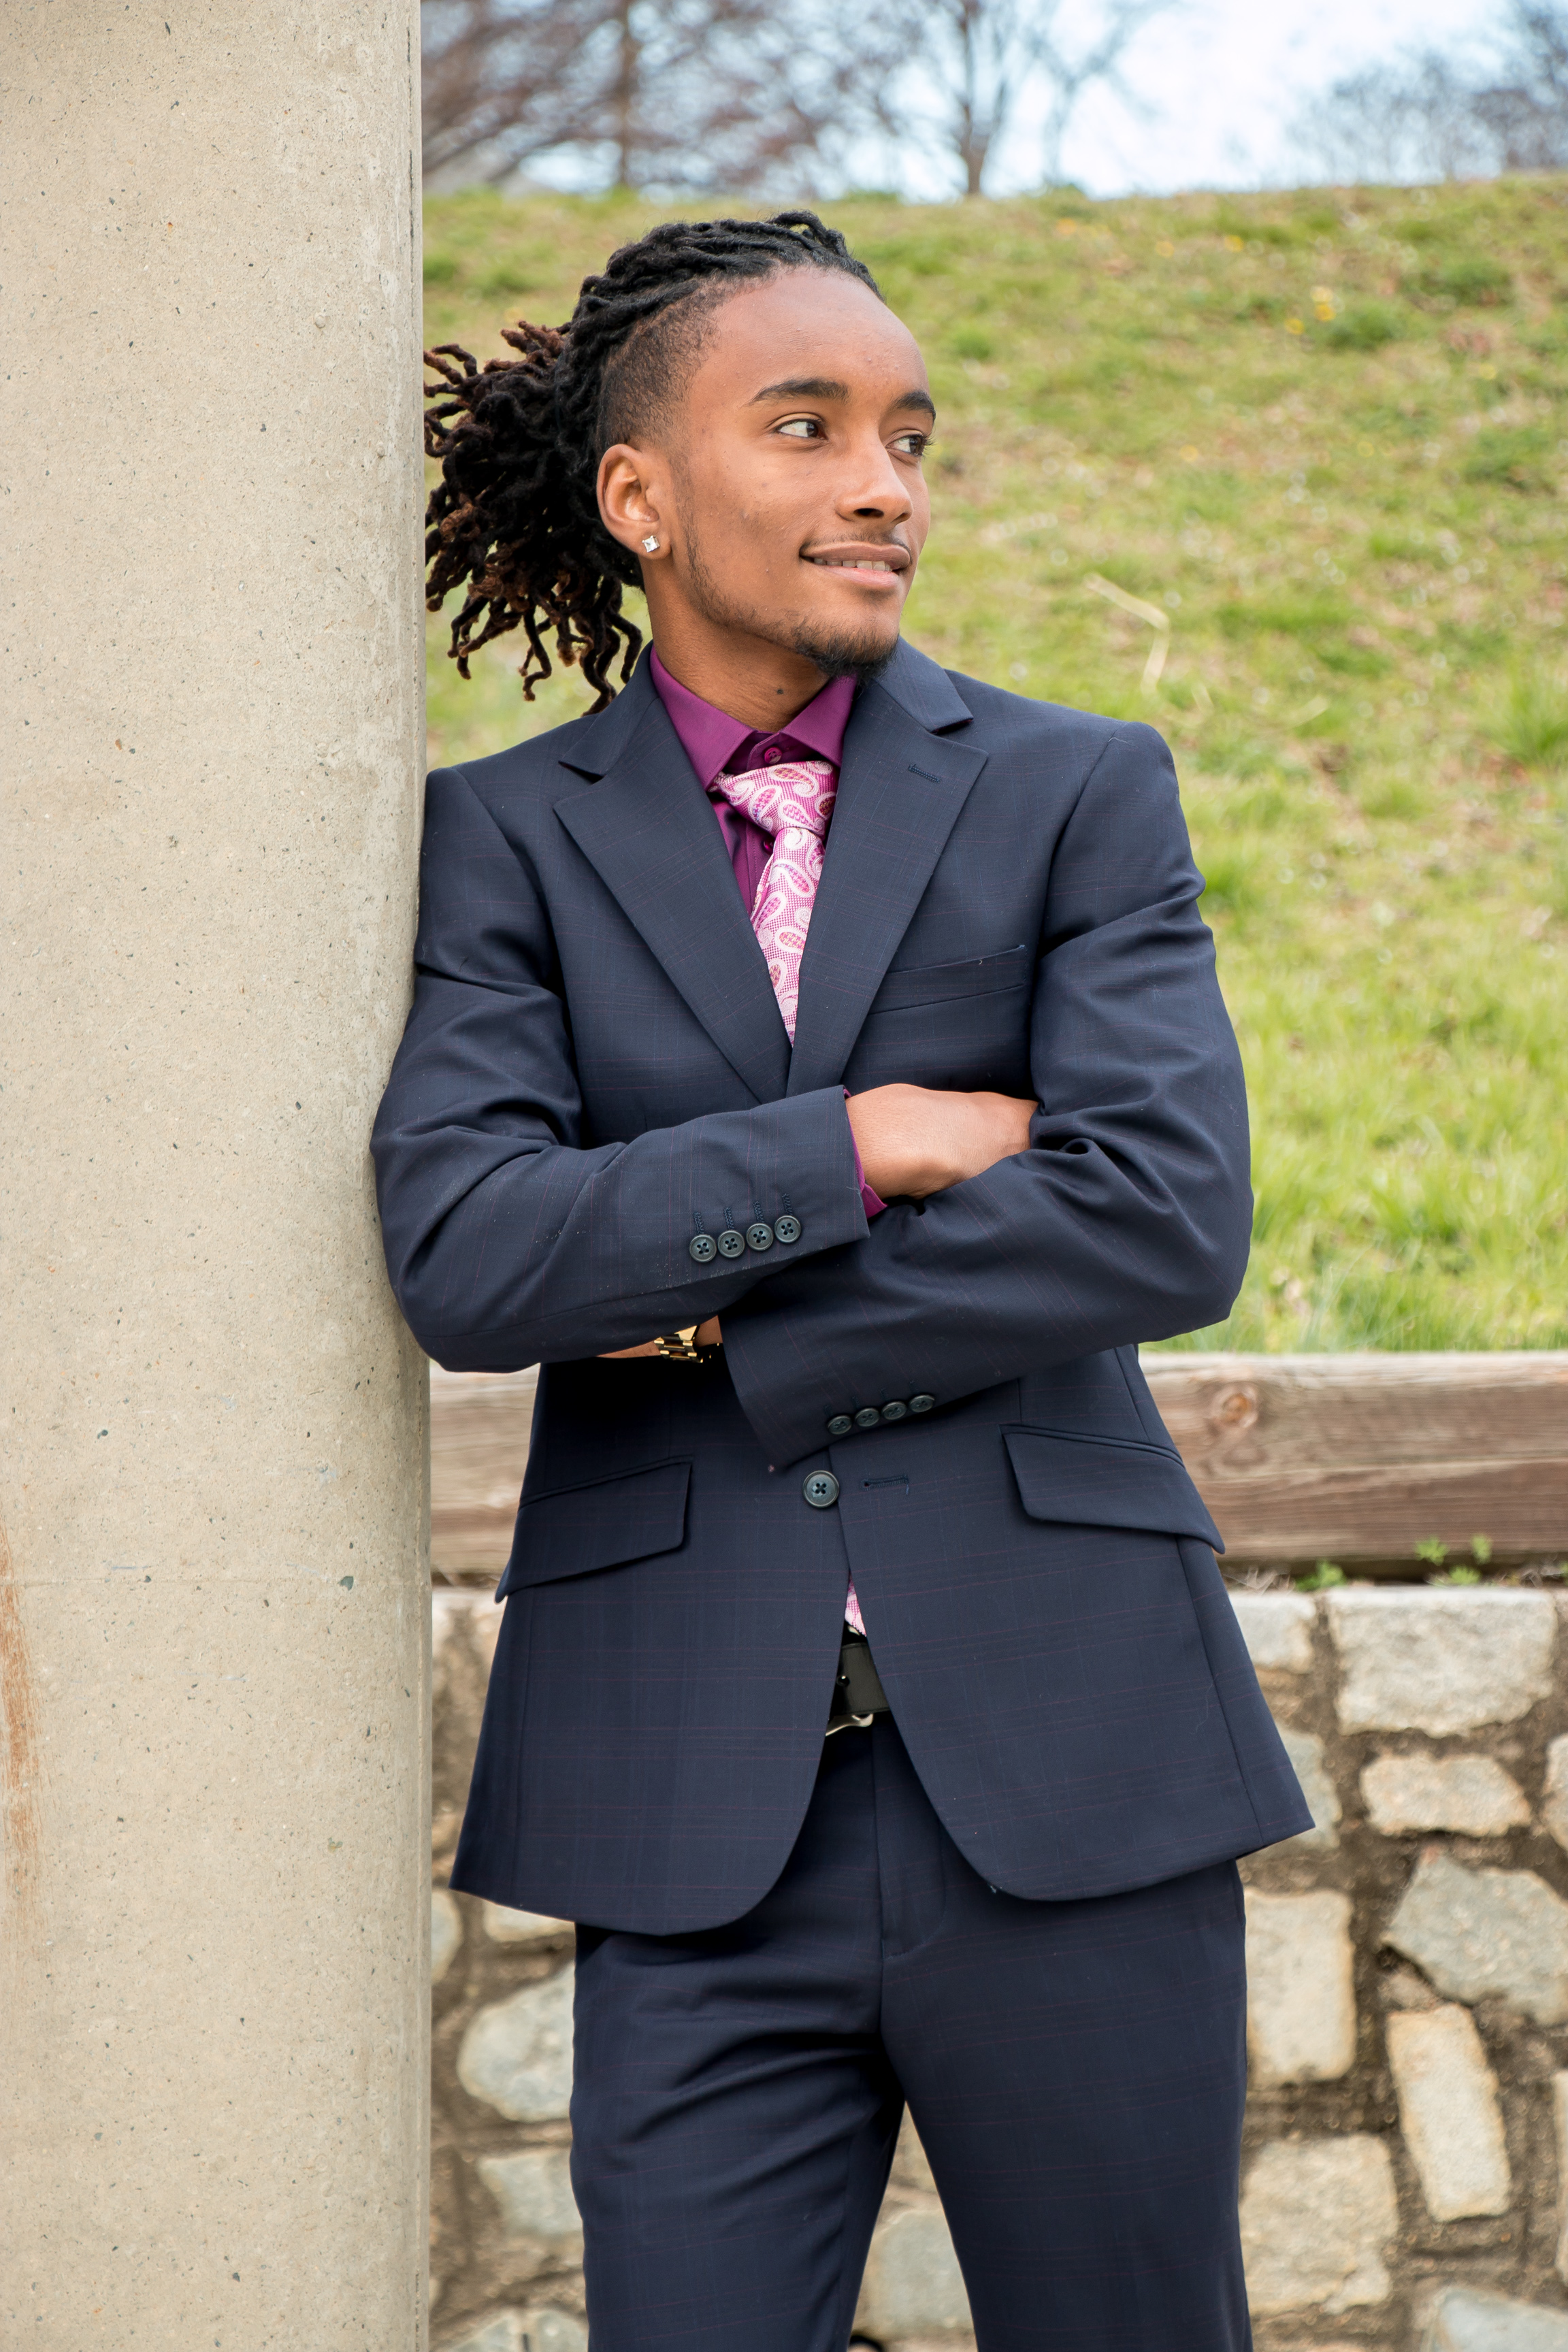 College Grad Posing in Suit and Tie